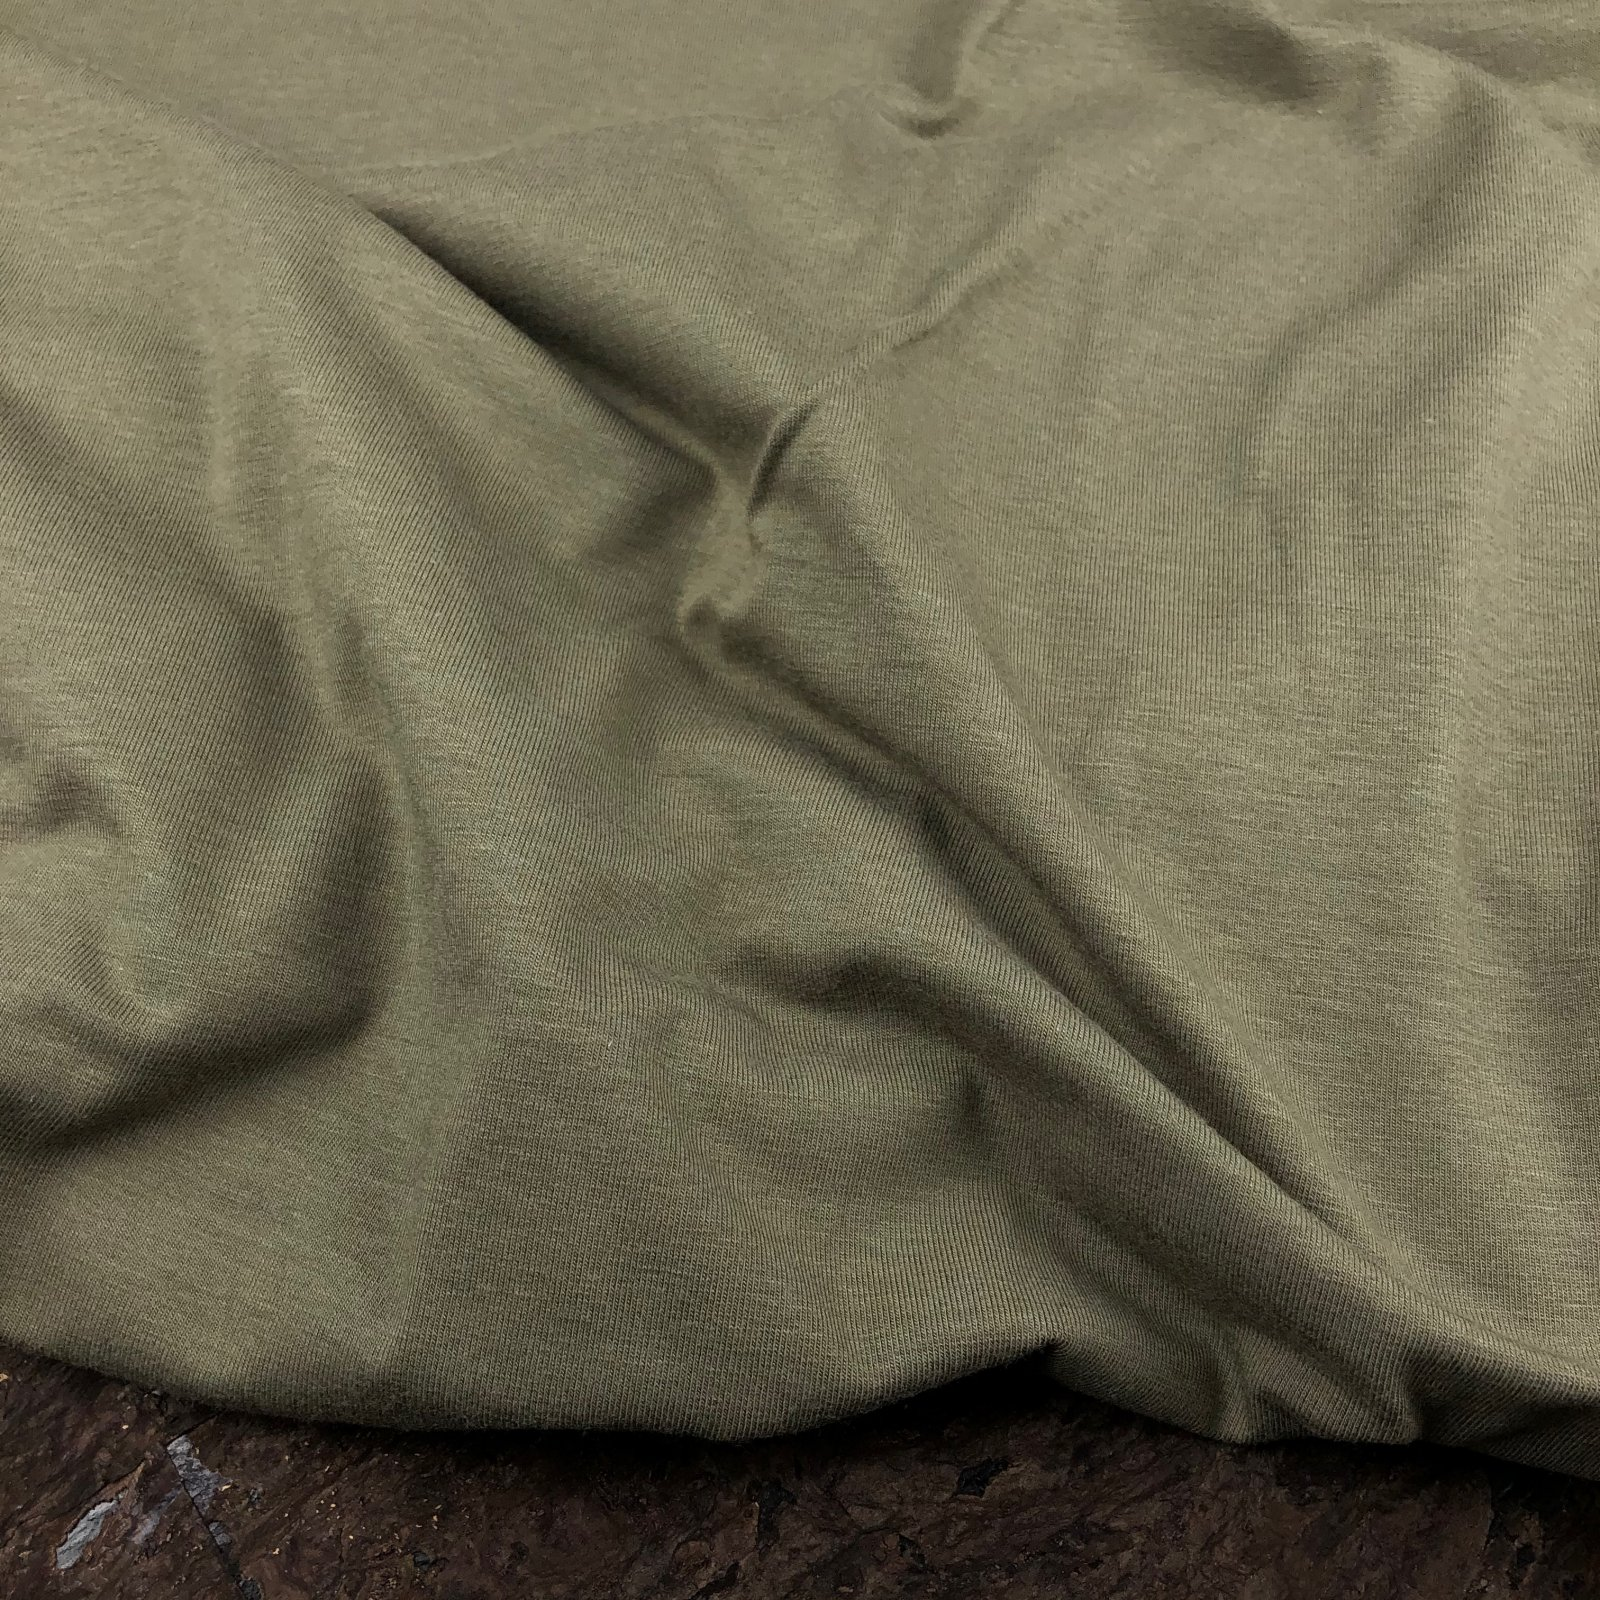 Bamboo Cotton Jersey Knit - 200 gsm - Olive - Kendor